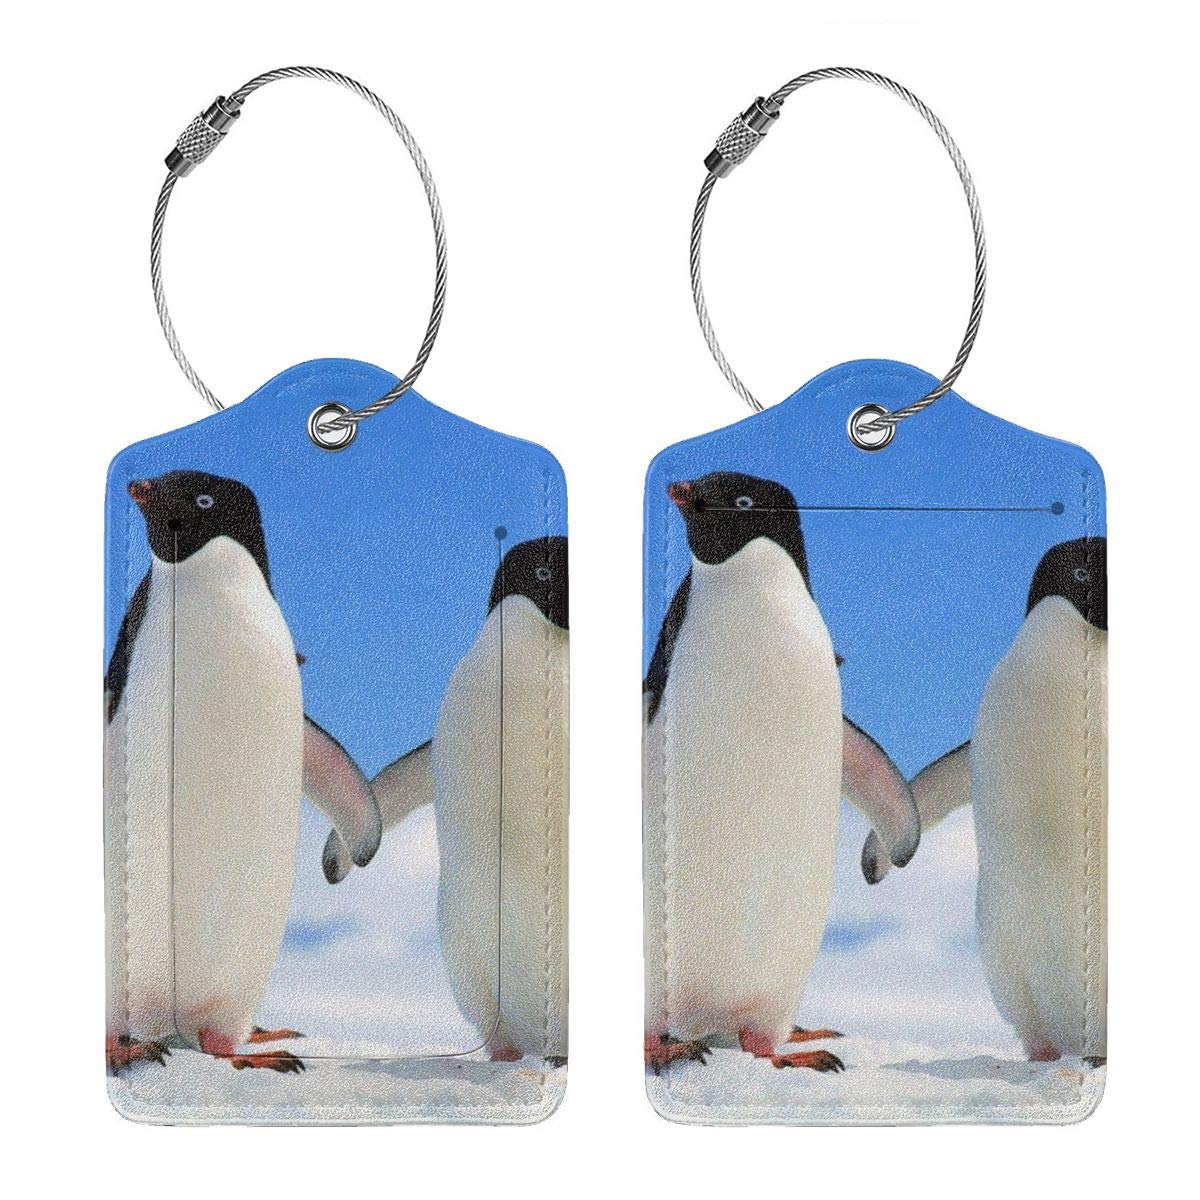 Cute-Two-Penguins Leather Luggage Tags Personalized Flexible Custom Travel Tags With Adjustable Strap